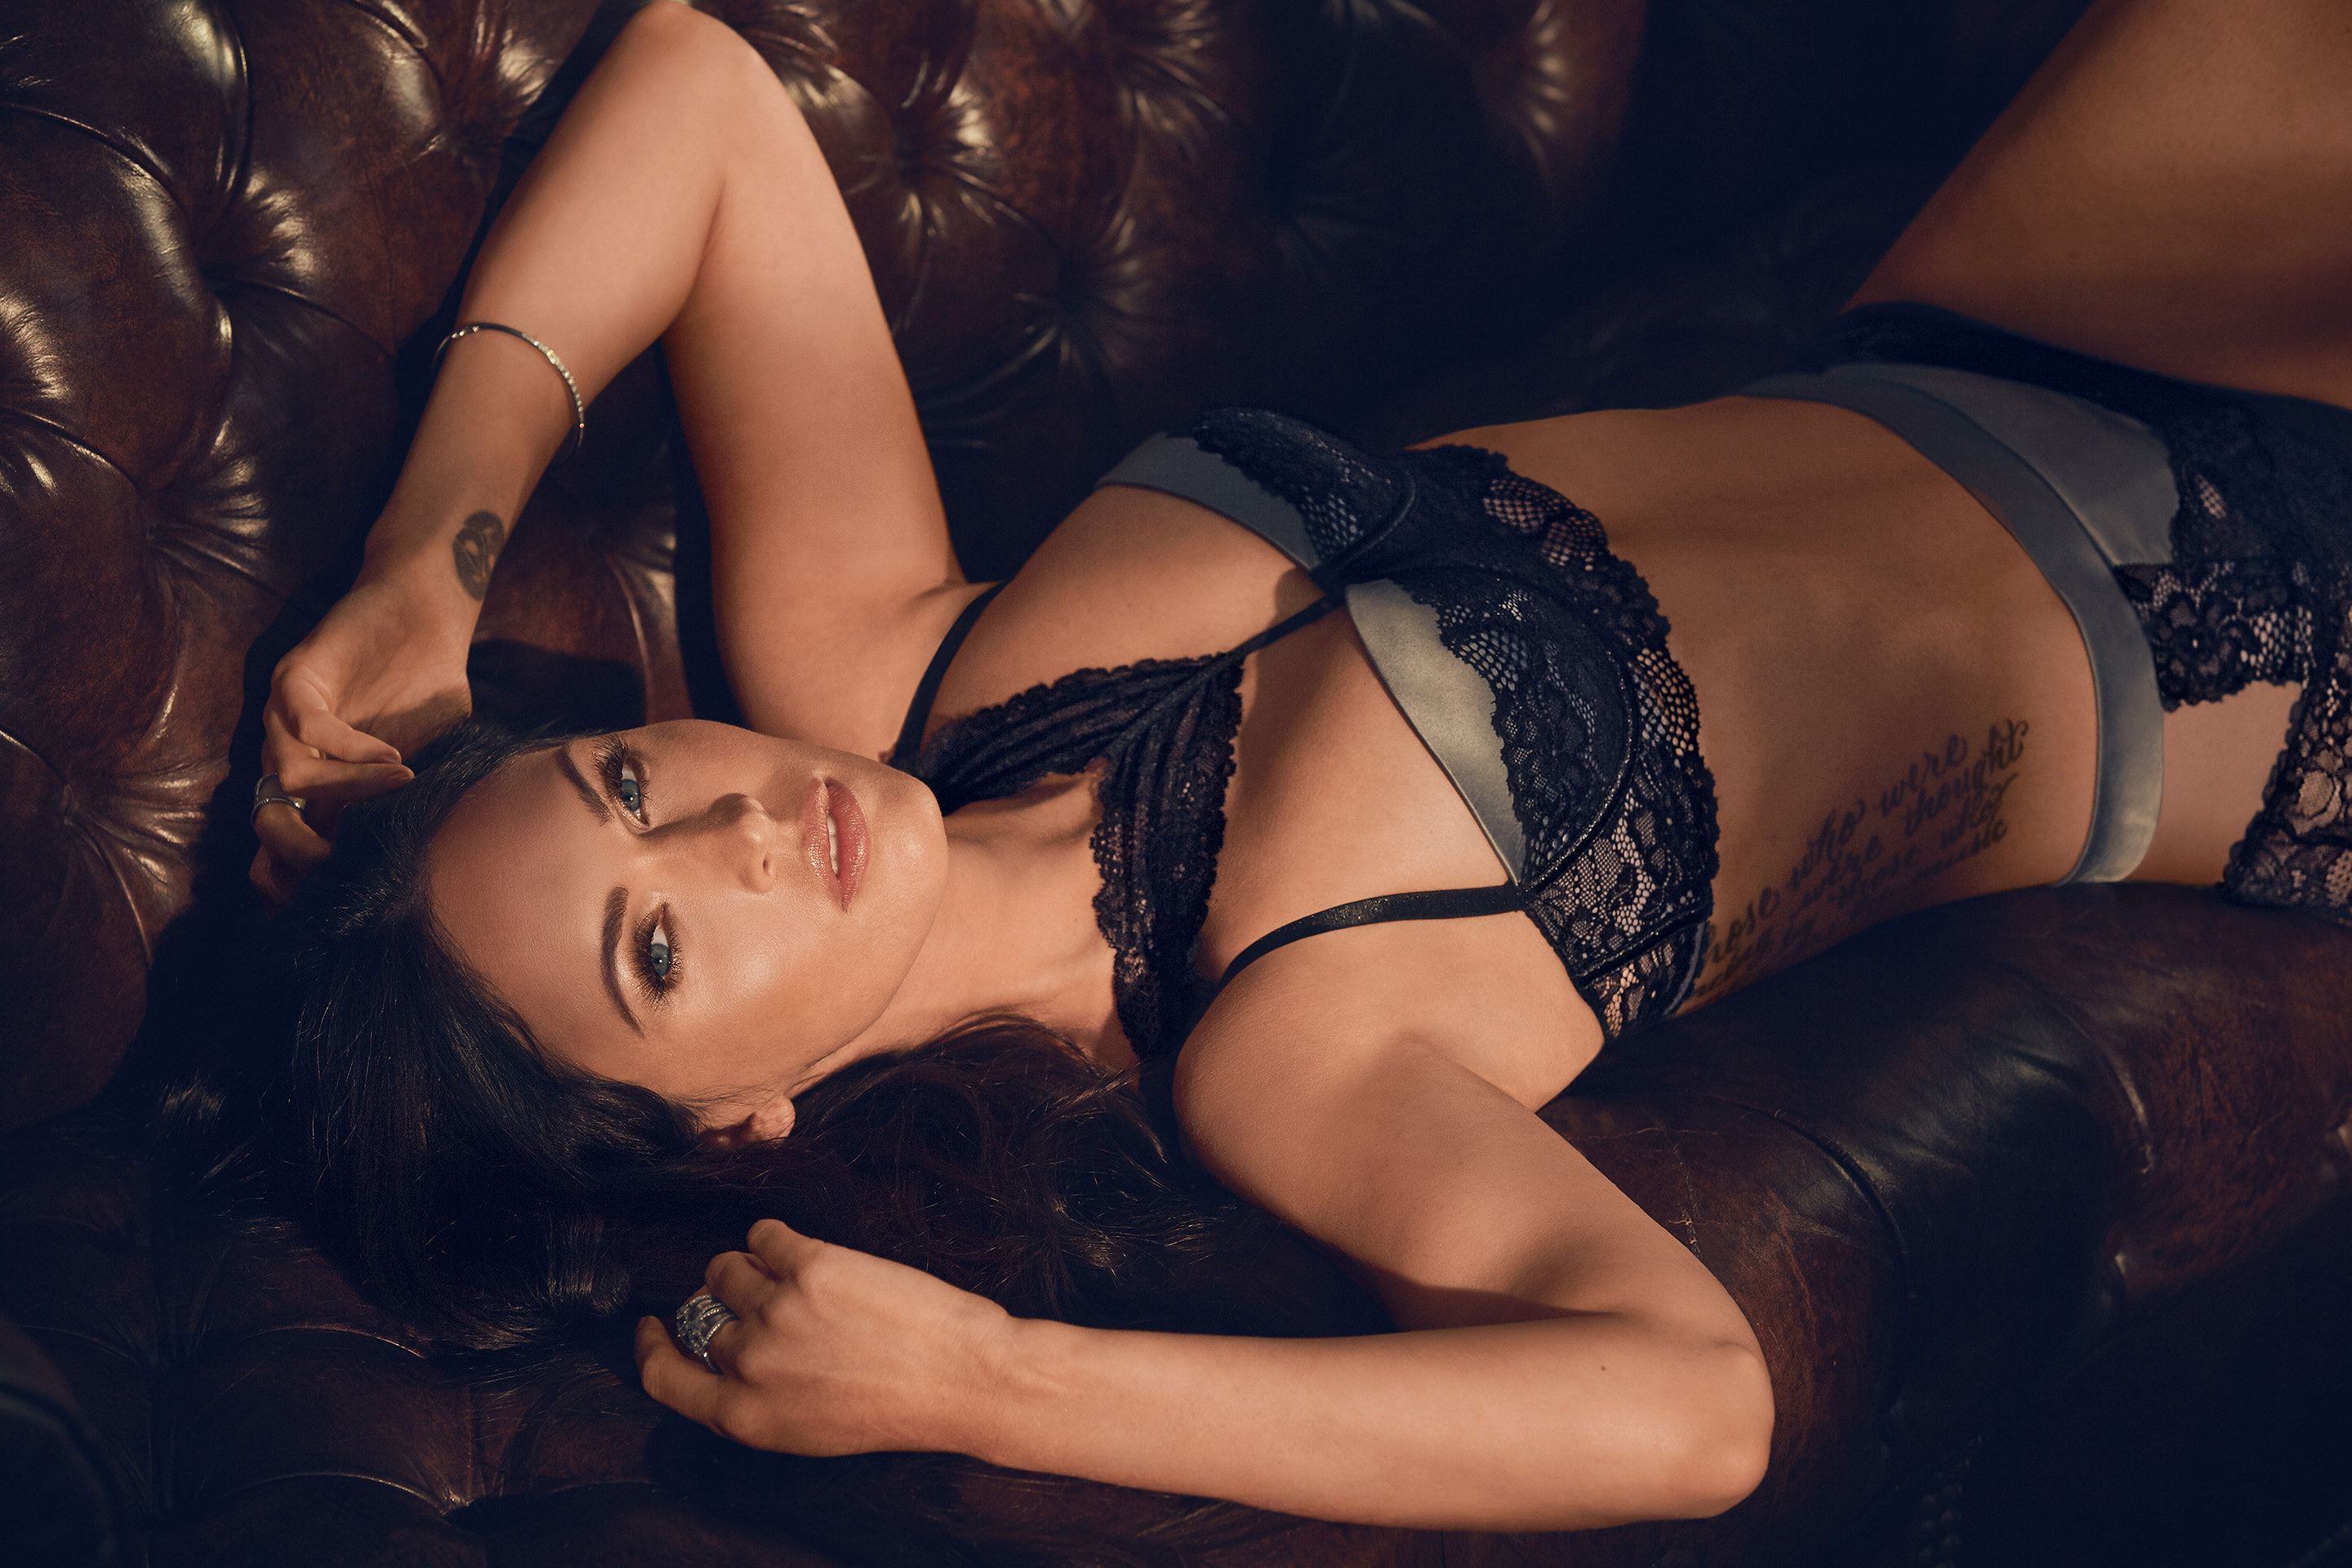 Megan Fox sin ropa interior 1